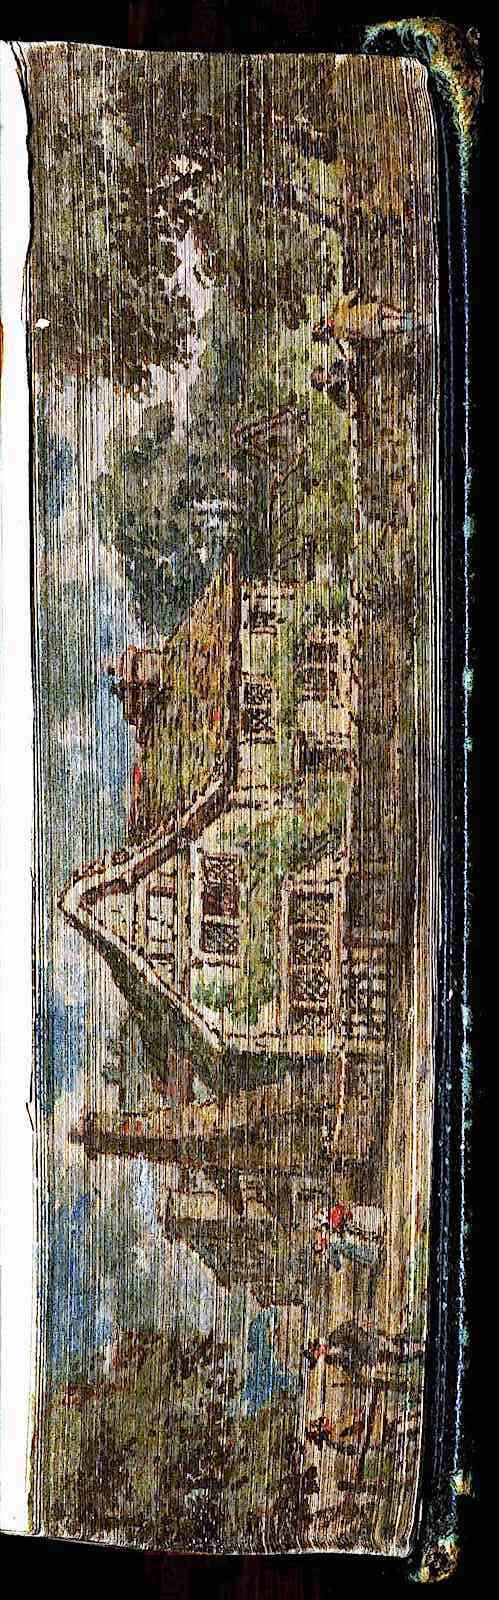 1818 book fore-edge art, a painting or  drawing on the ends of the closed pages, a color photograph